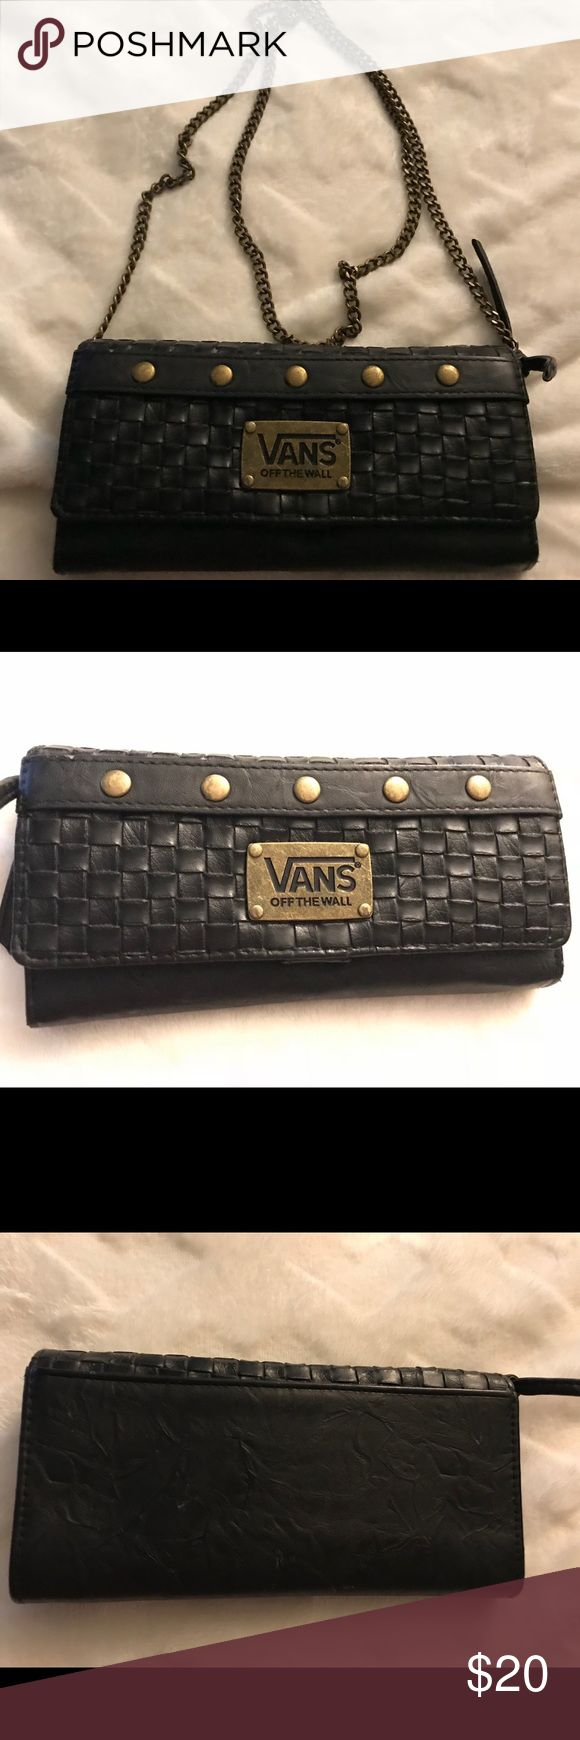 Vans Wallet with chain Black and Gold Wallet - turns into a crossbody purse with chain Vans Bags Crossbody Bags